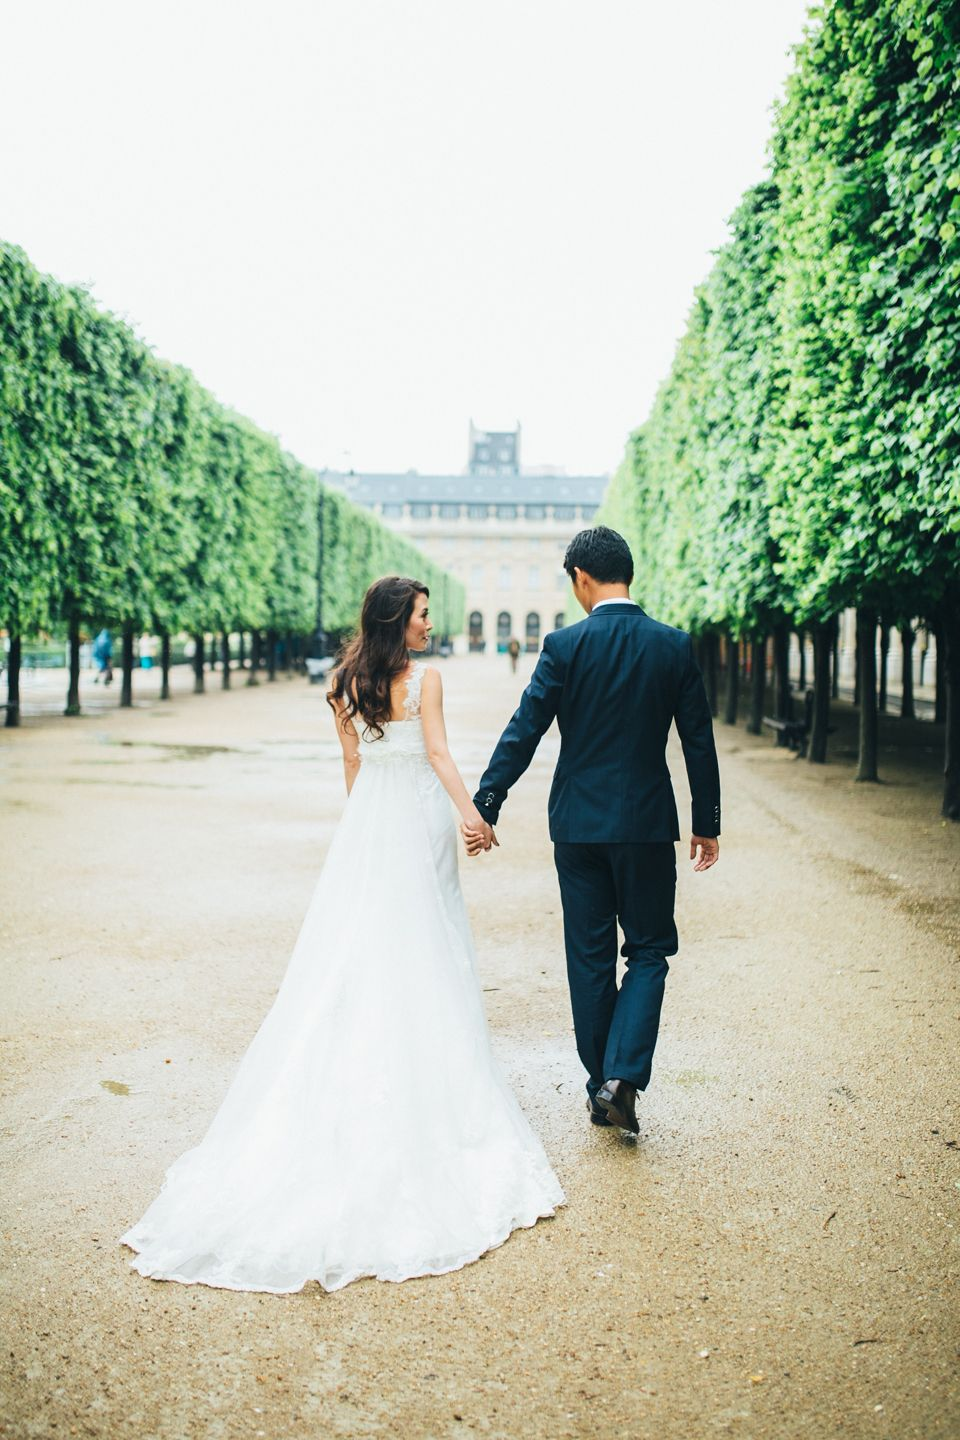 06/ Elopement in France - LifestoriesLifestories